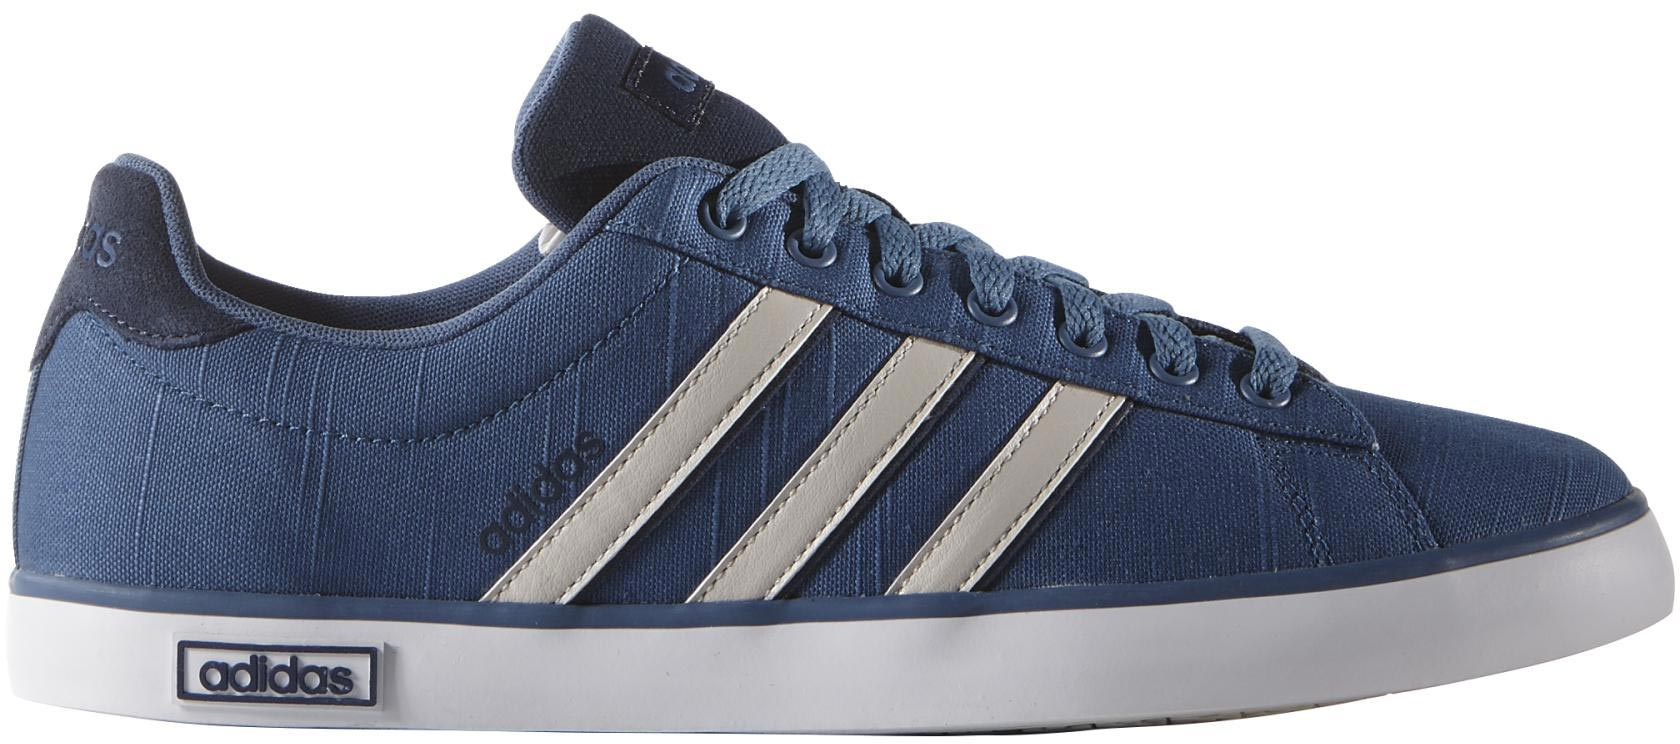 b073c6080e ... wide range adidas DERBY VULC. Men s leisure shoes 79618 d861c ...